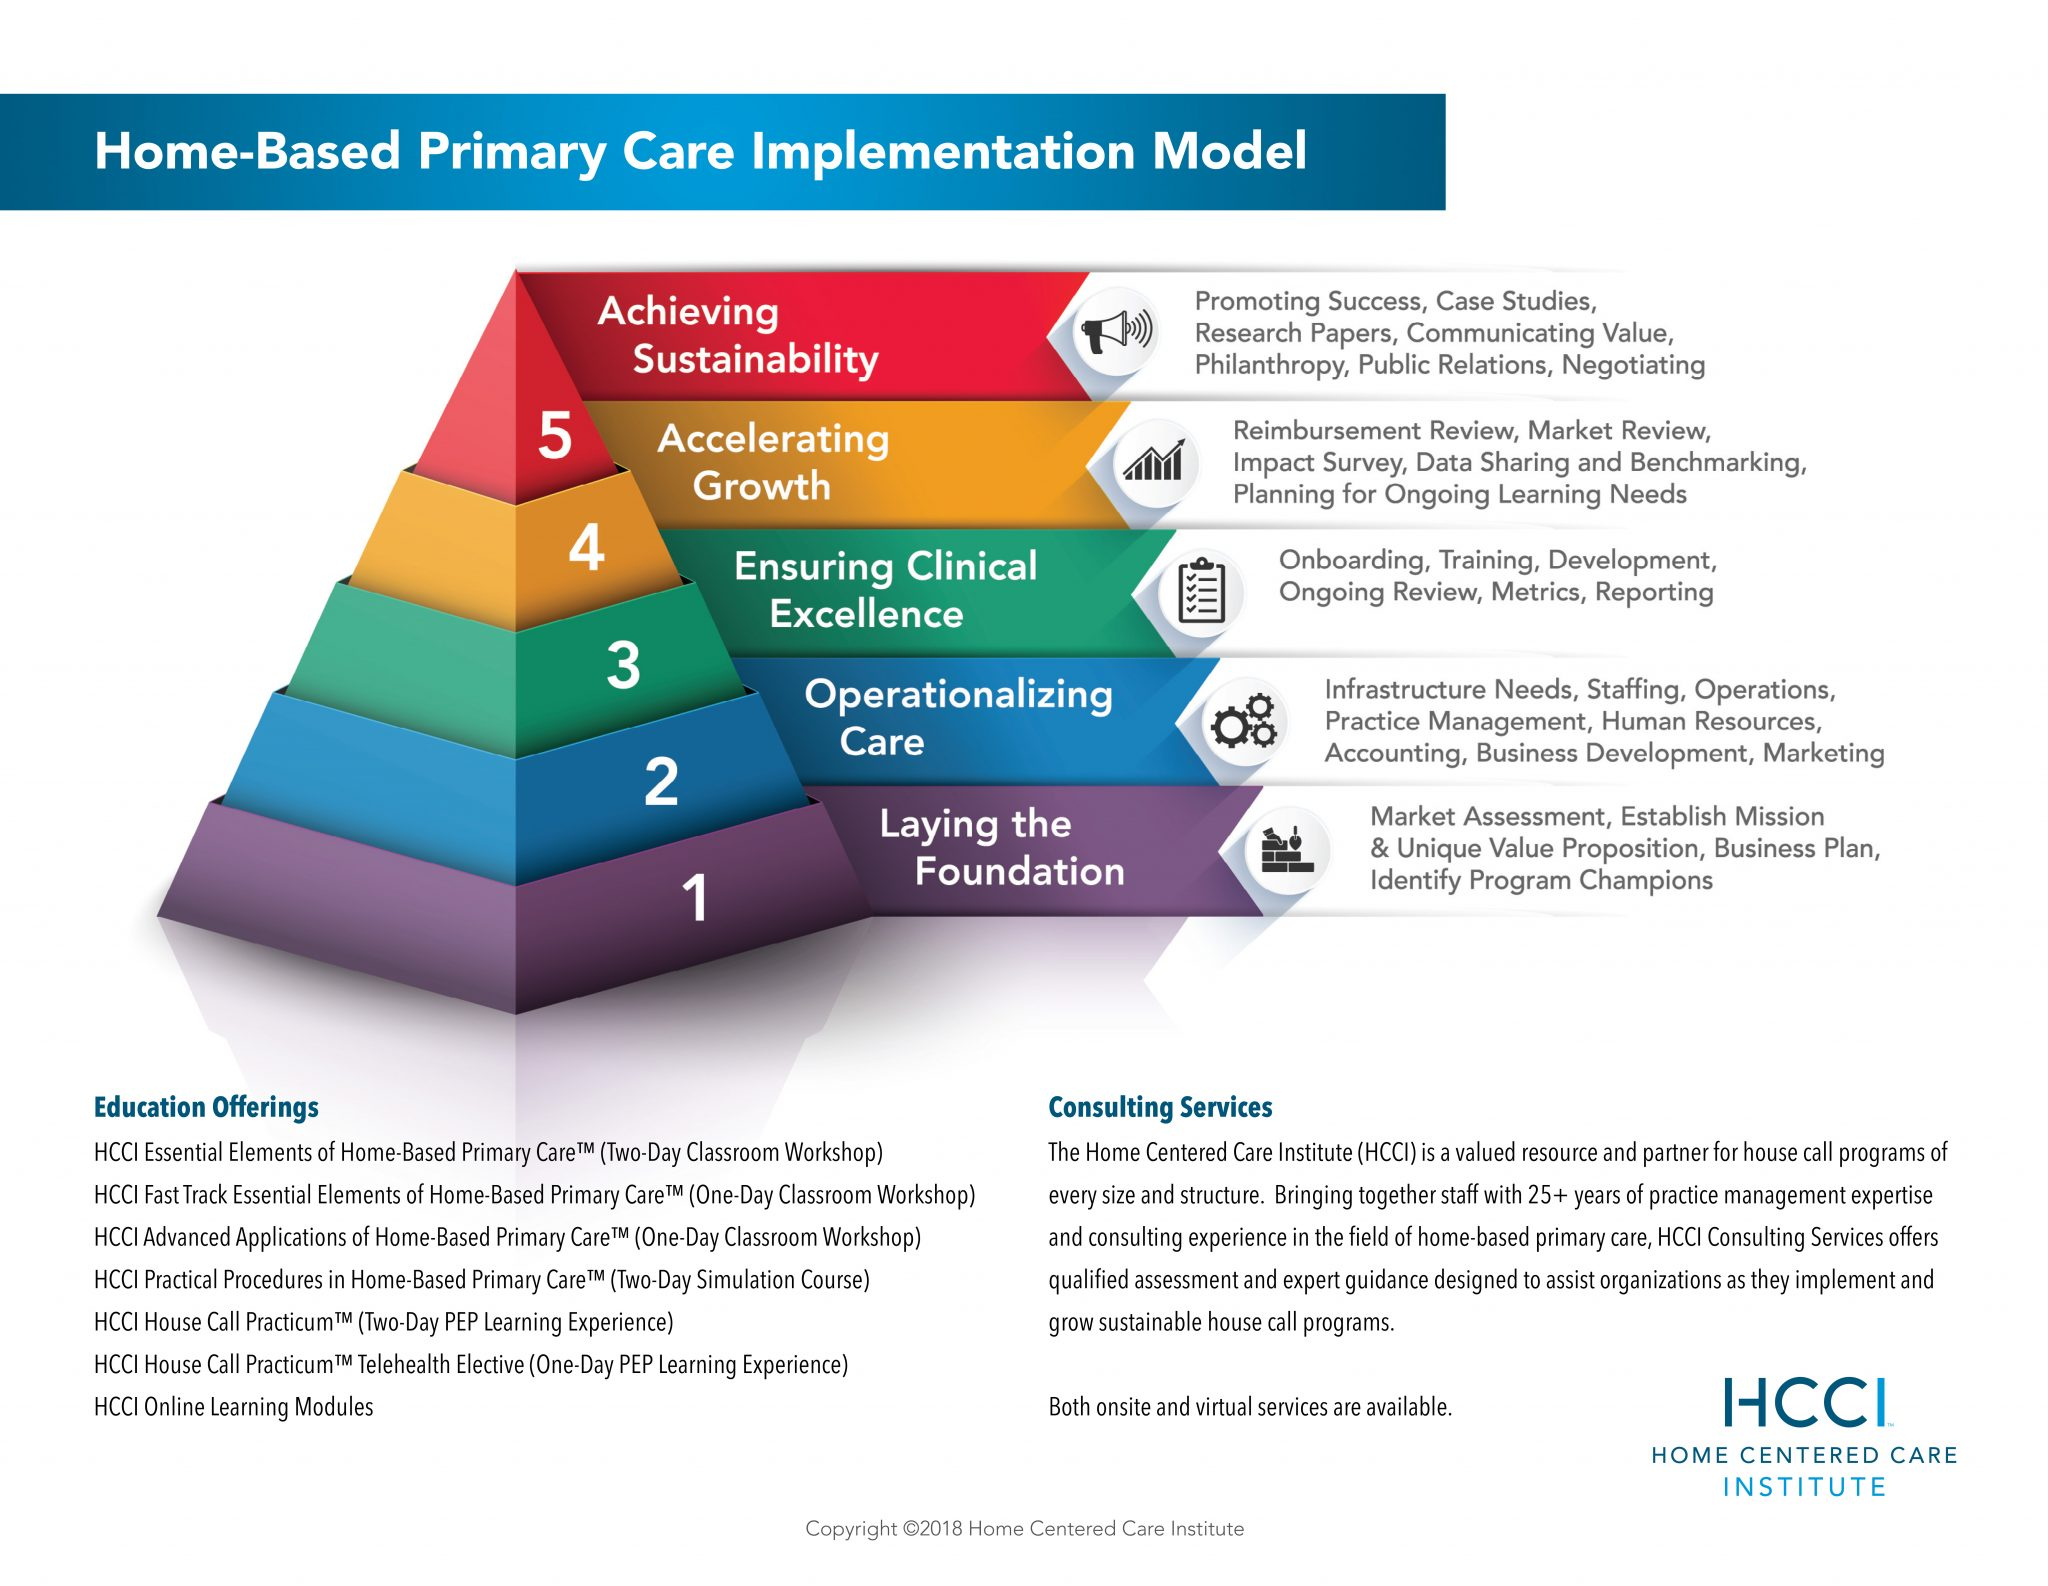 HCCI Home-Based Primary Care Implementation Model